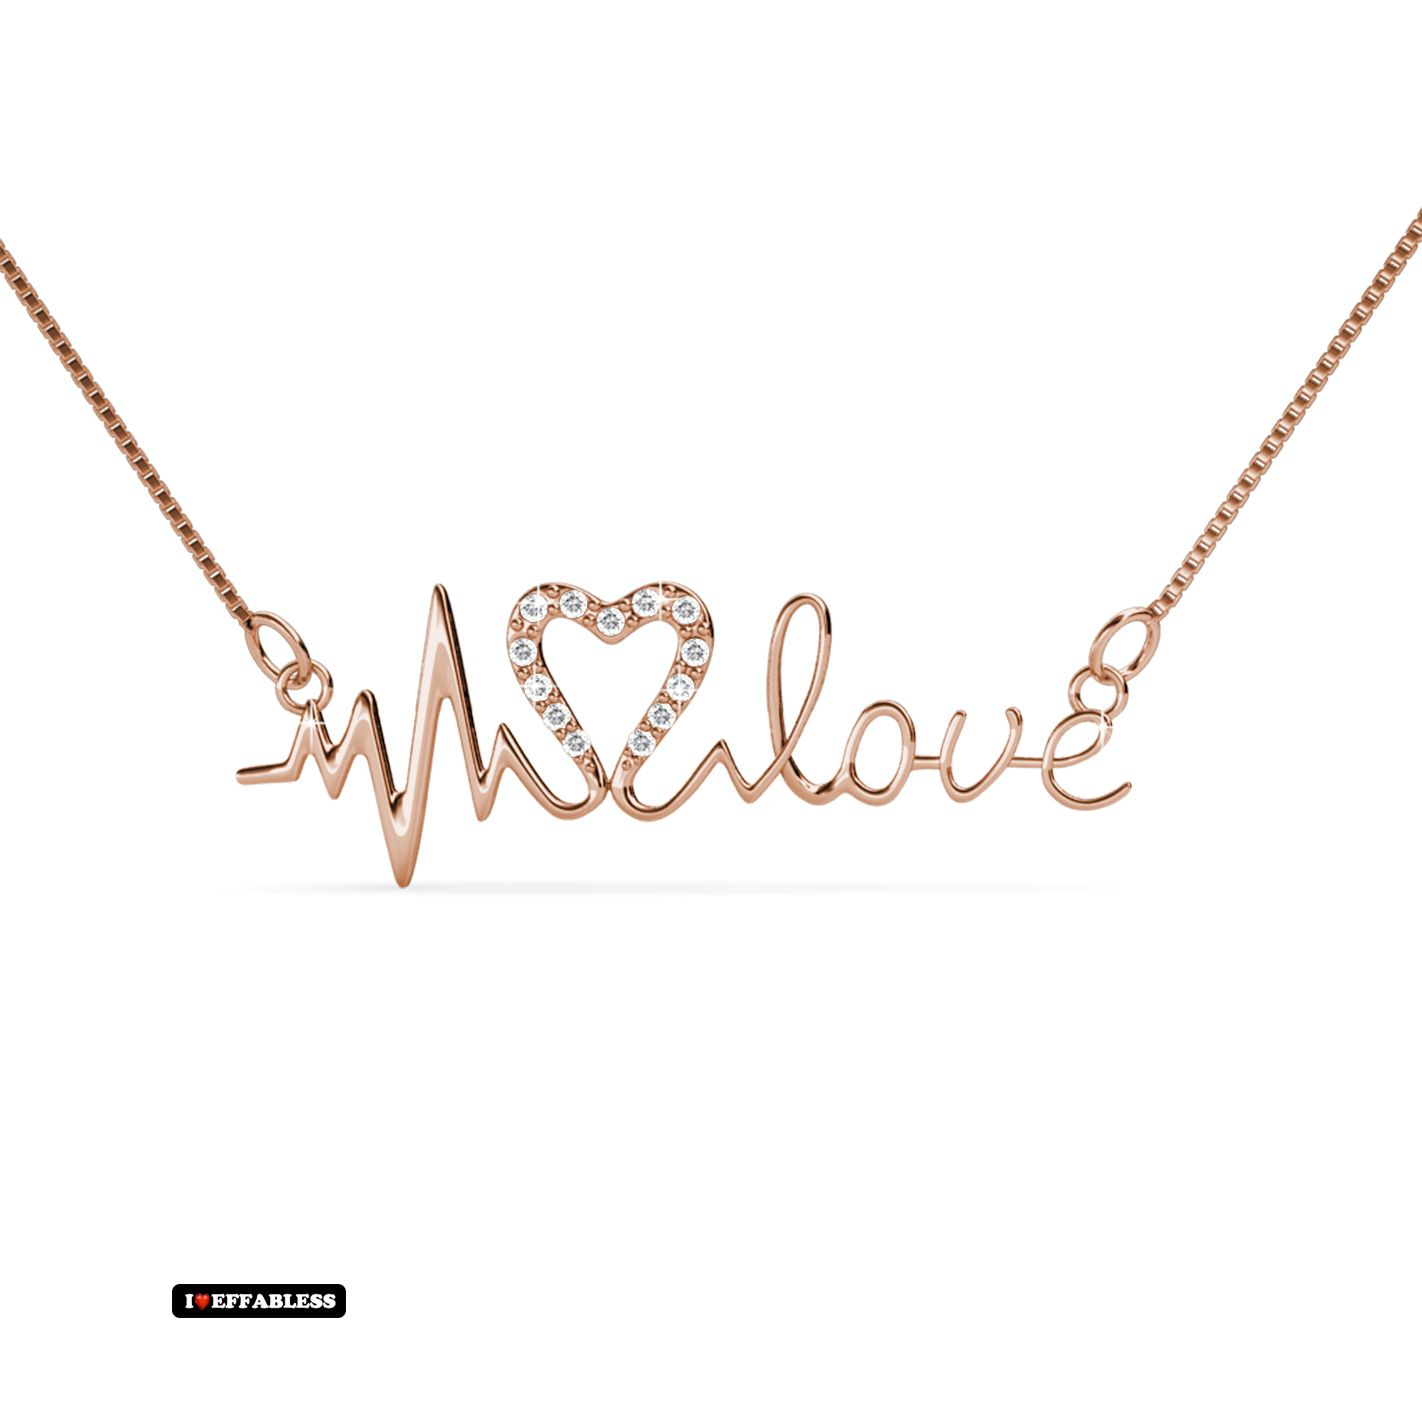 The design of this heartbeat and love necklace is beautiful